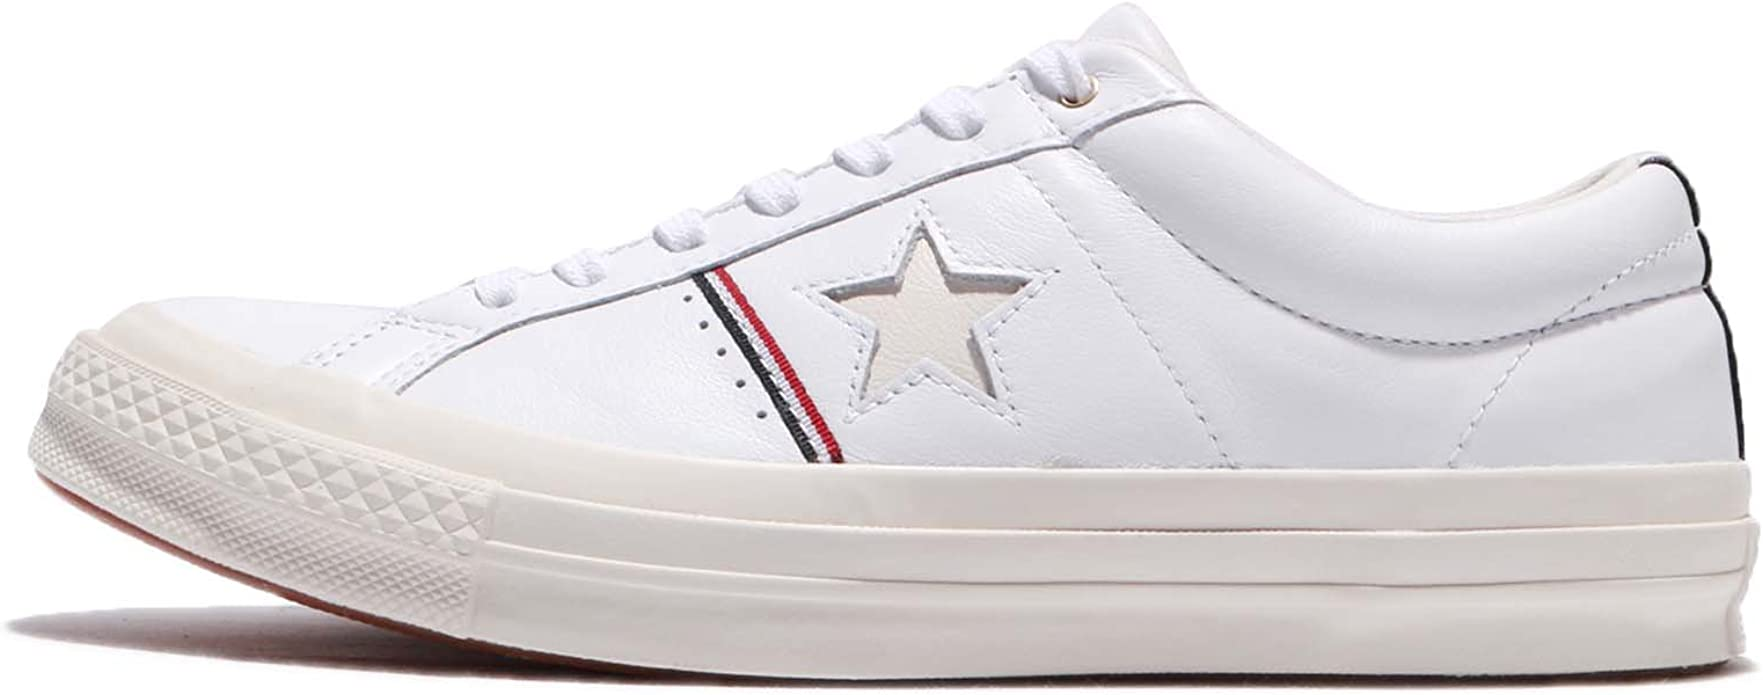 Converse One Star OX White/Enamel Red